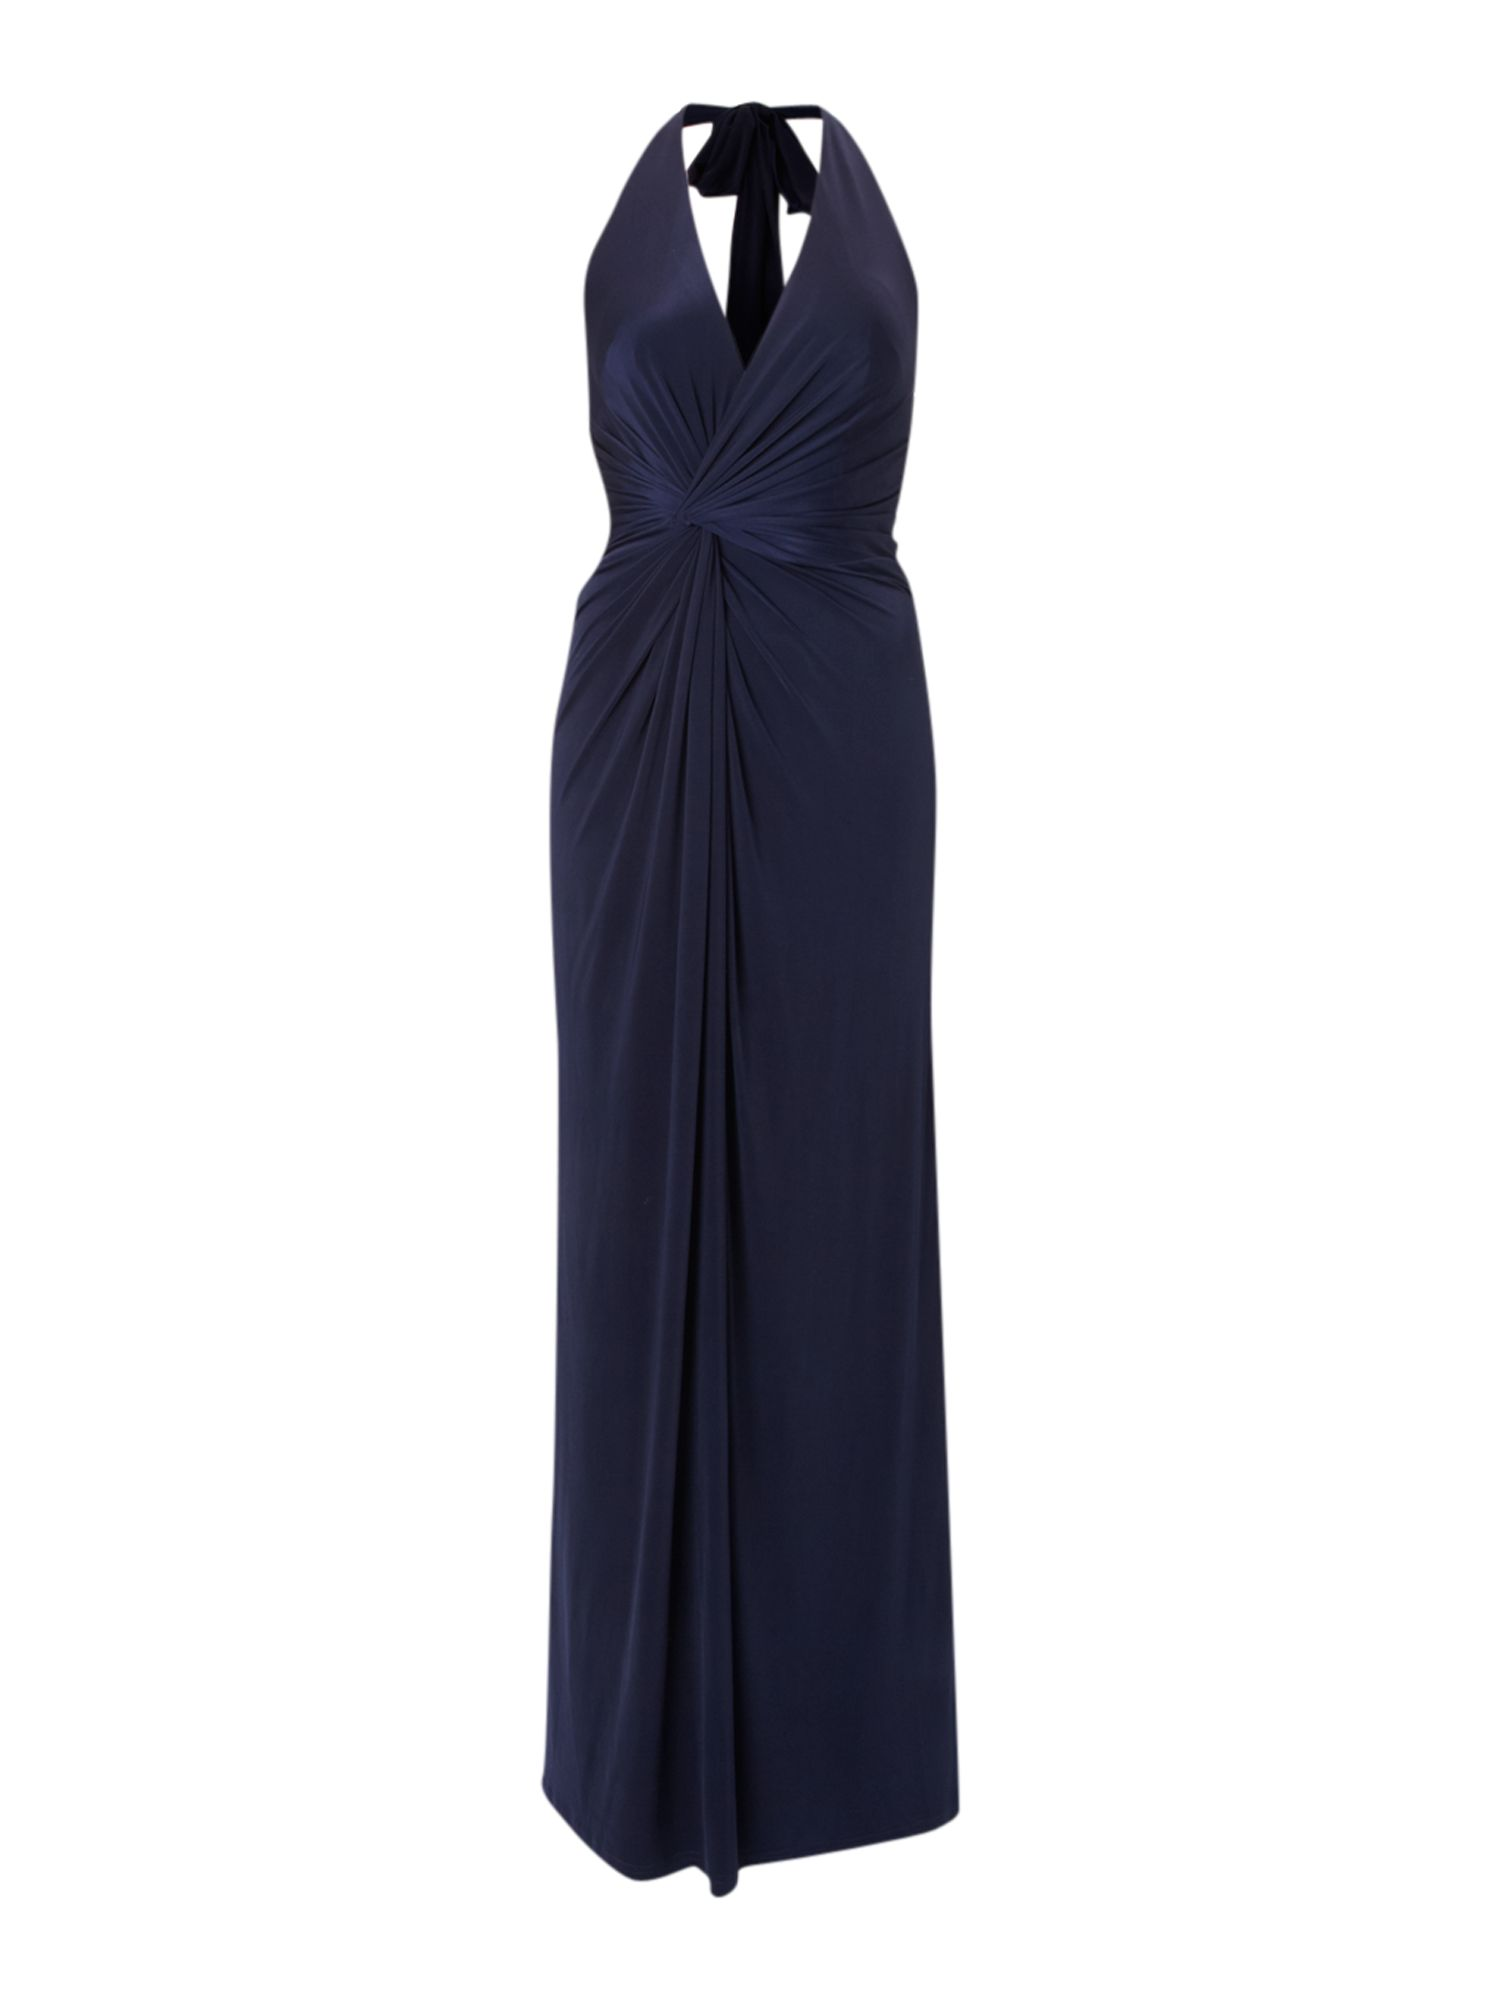 Marilyn halter neck maxi dress